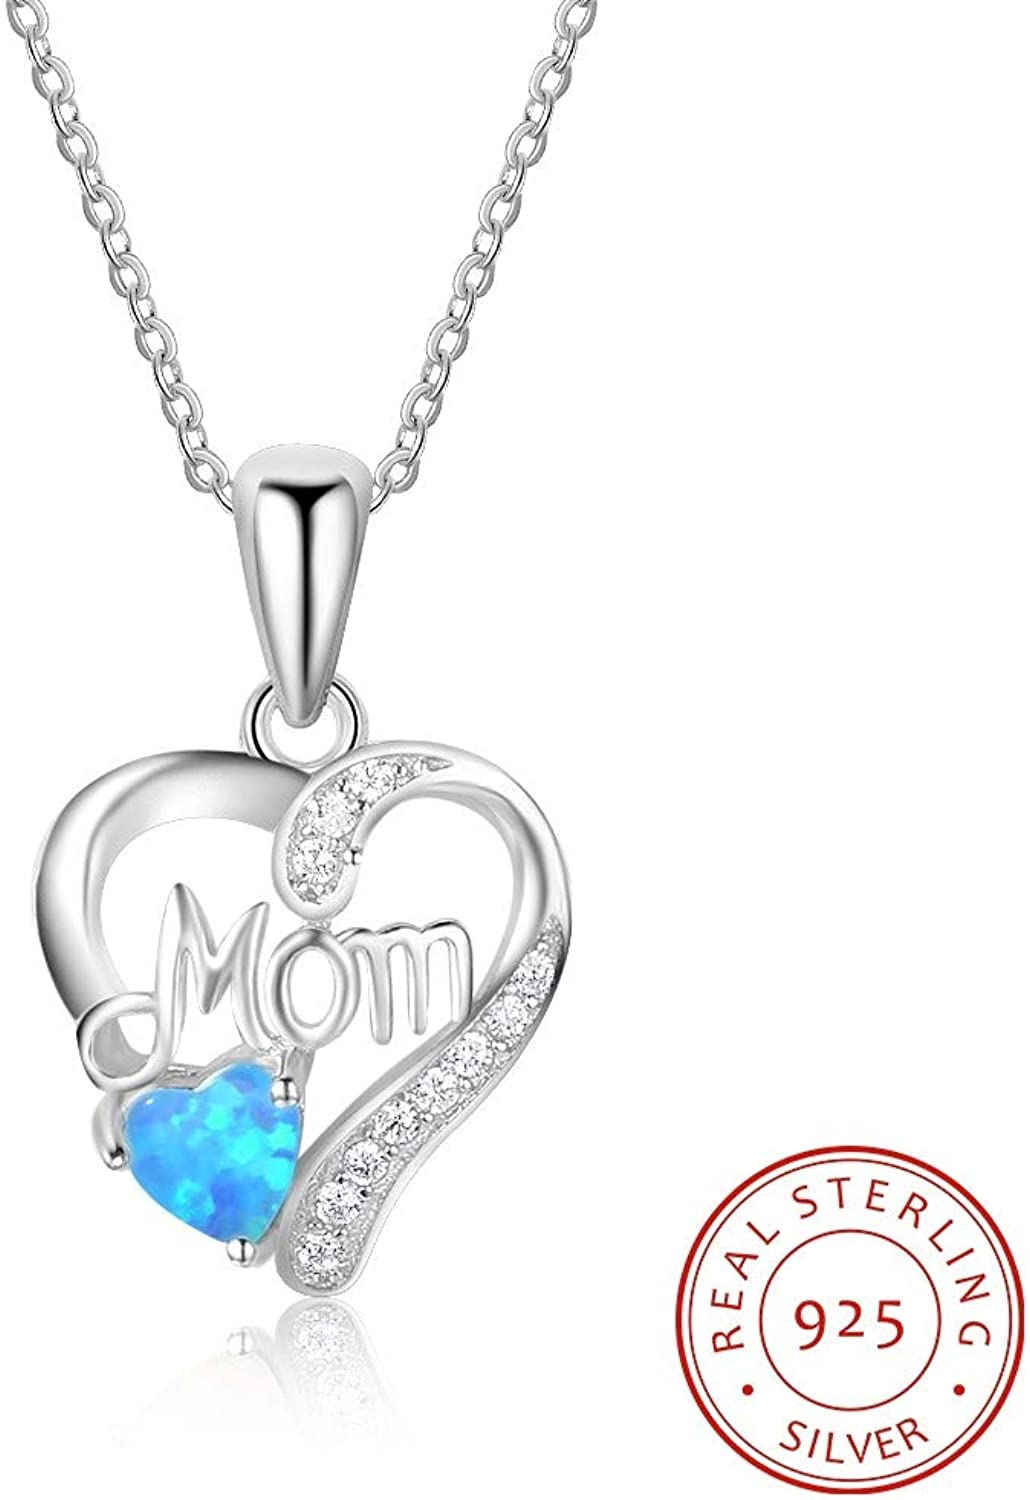 QMM necklace Pendant Best Gift for Mom Heart Shape Necklaces & Pendants bluee with 925 Sterlilng Silver Necklace for Women